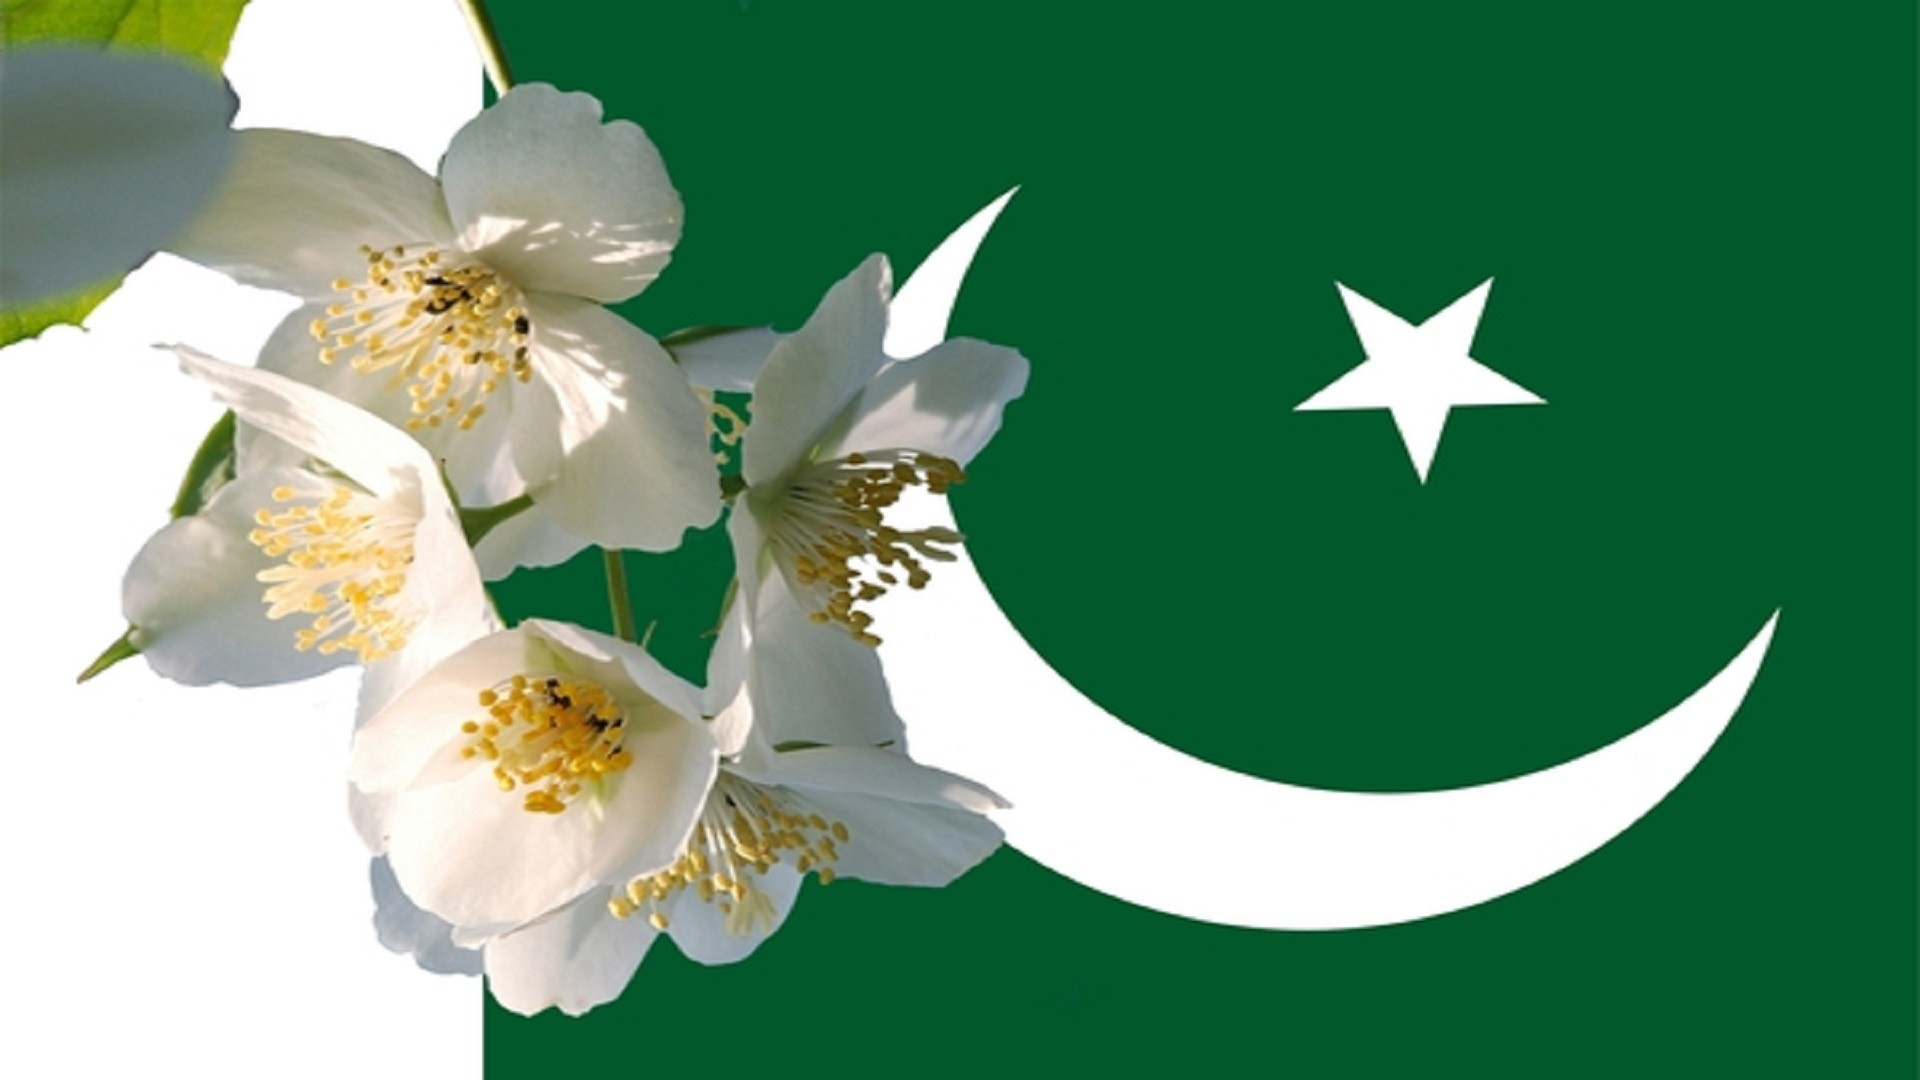 Pakistan flag wallpapers hd 2018 57 background pictures 1920x1080 white flowers with pakistani flag free wallpapers hd mightylinksfo